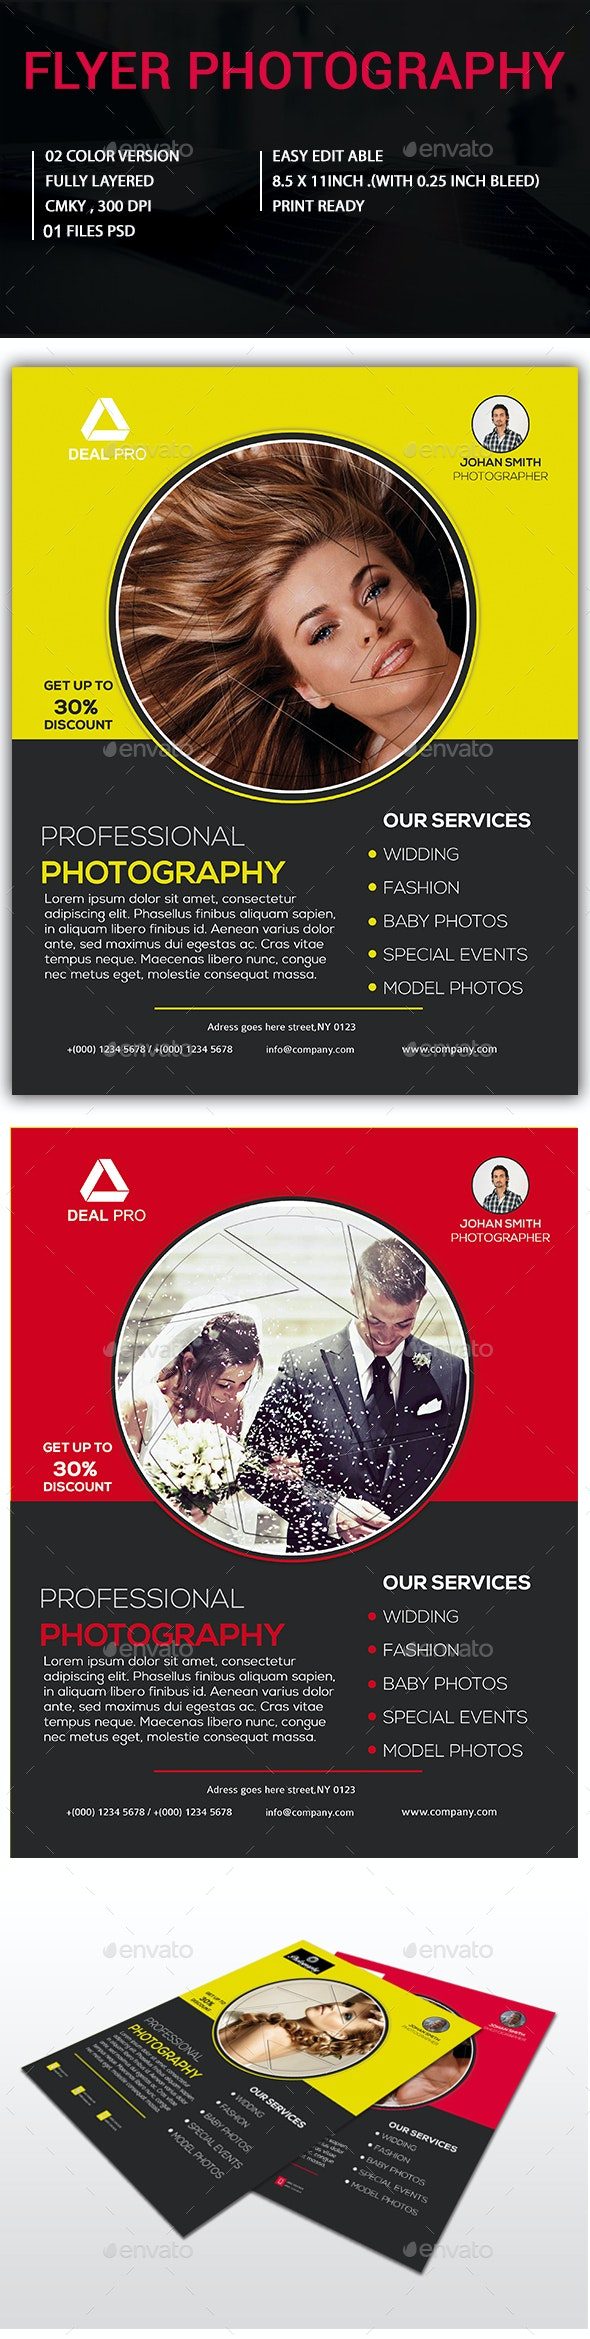 Flyer Photography - Corporate Flyers